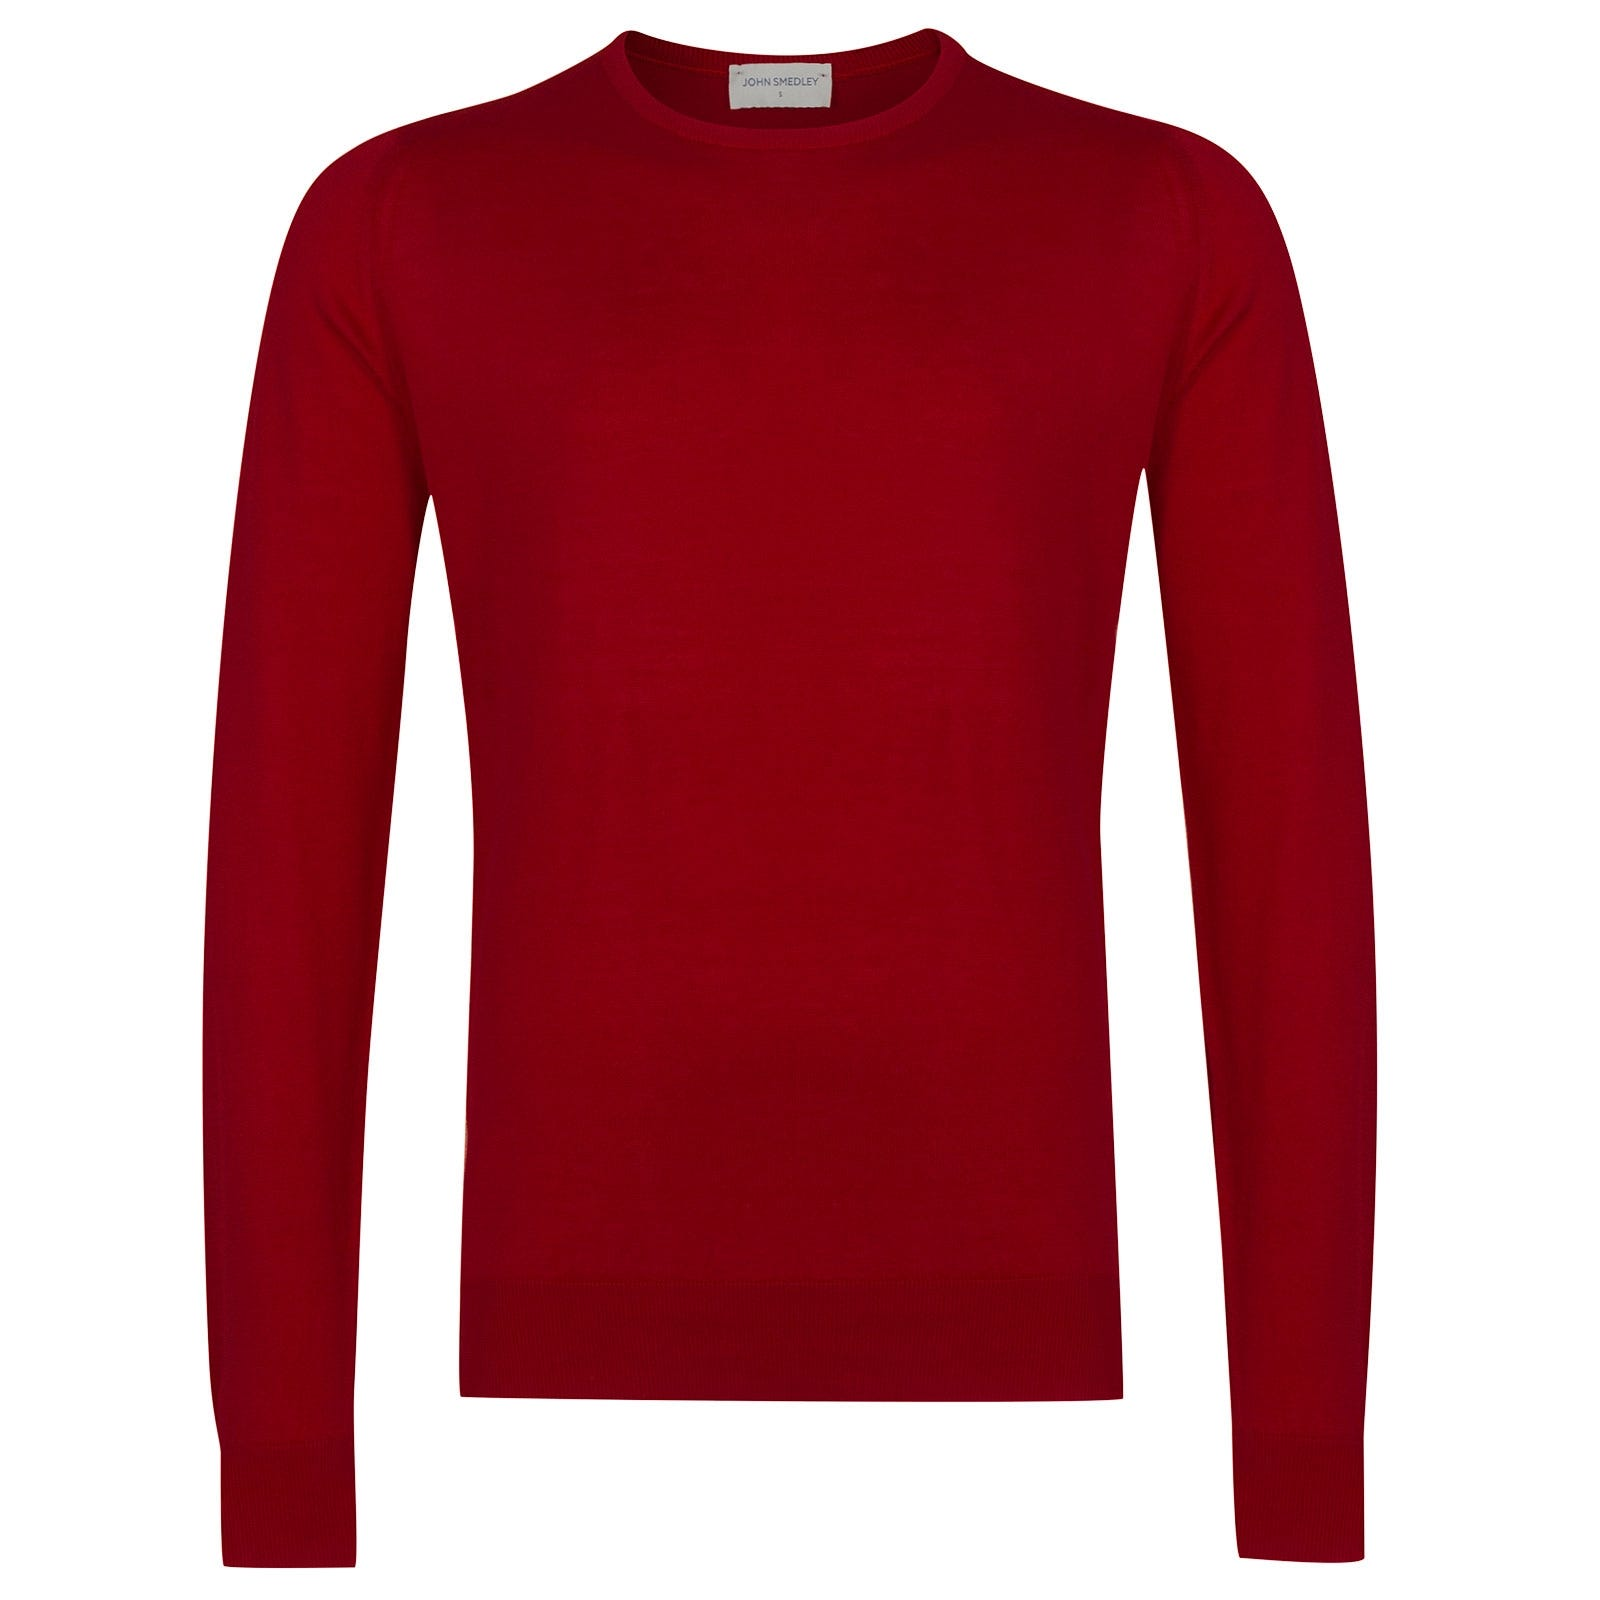 John Smedley HatfieldSea Island Cotton Pullover in Dandy Red-L